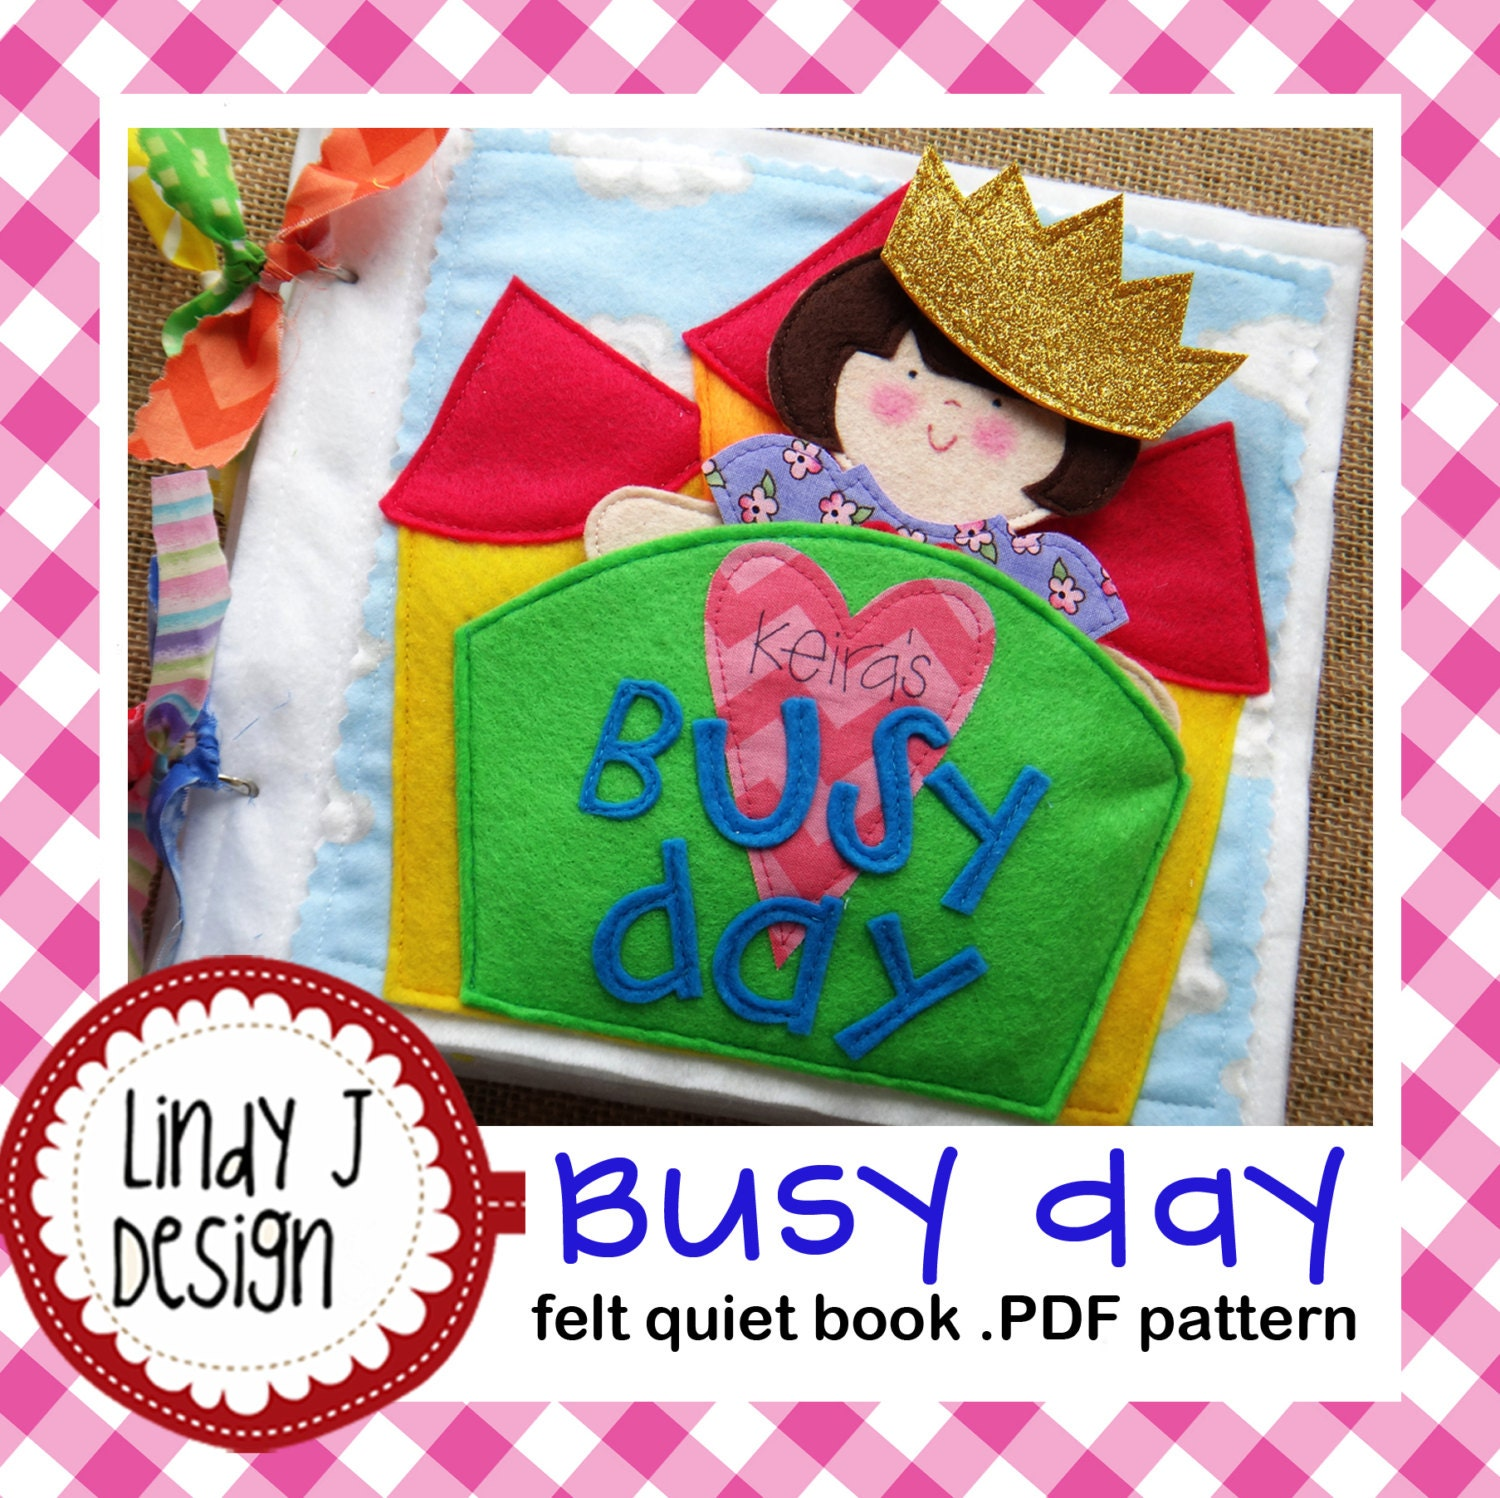 Busy day quiet book felt paper doll pdf pattern from busy day quiet book felt paper doll pdf pattern pronofoot35fo Choice Image